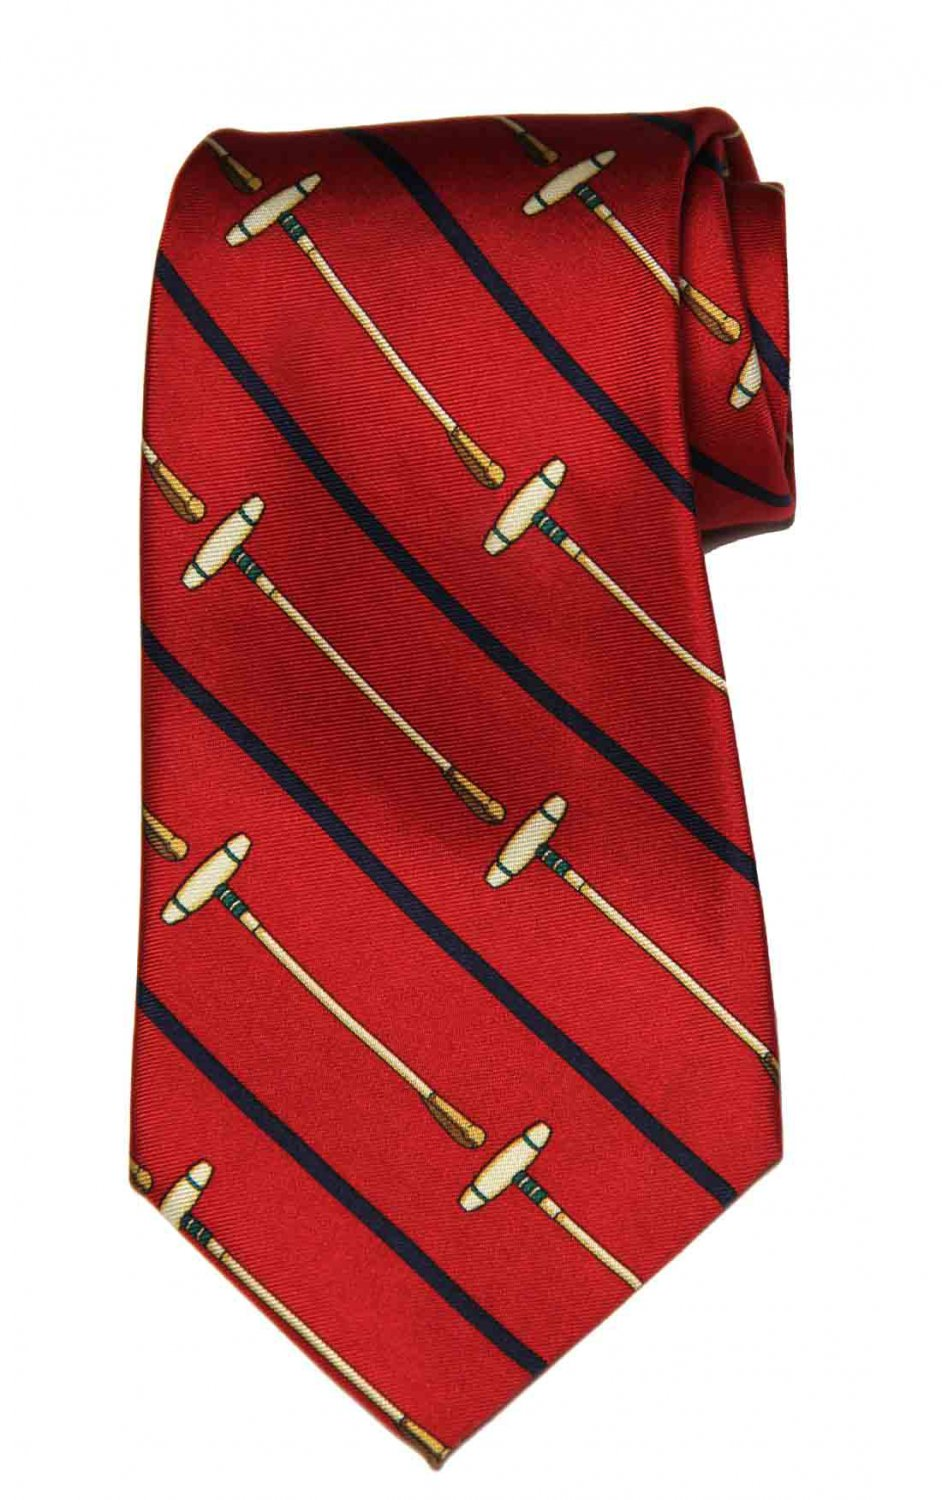 Vintage Polo by Ralph Lauren Tie Red Black Tan Silk Polo Mallets Striped Men's